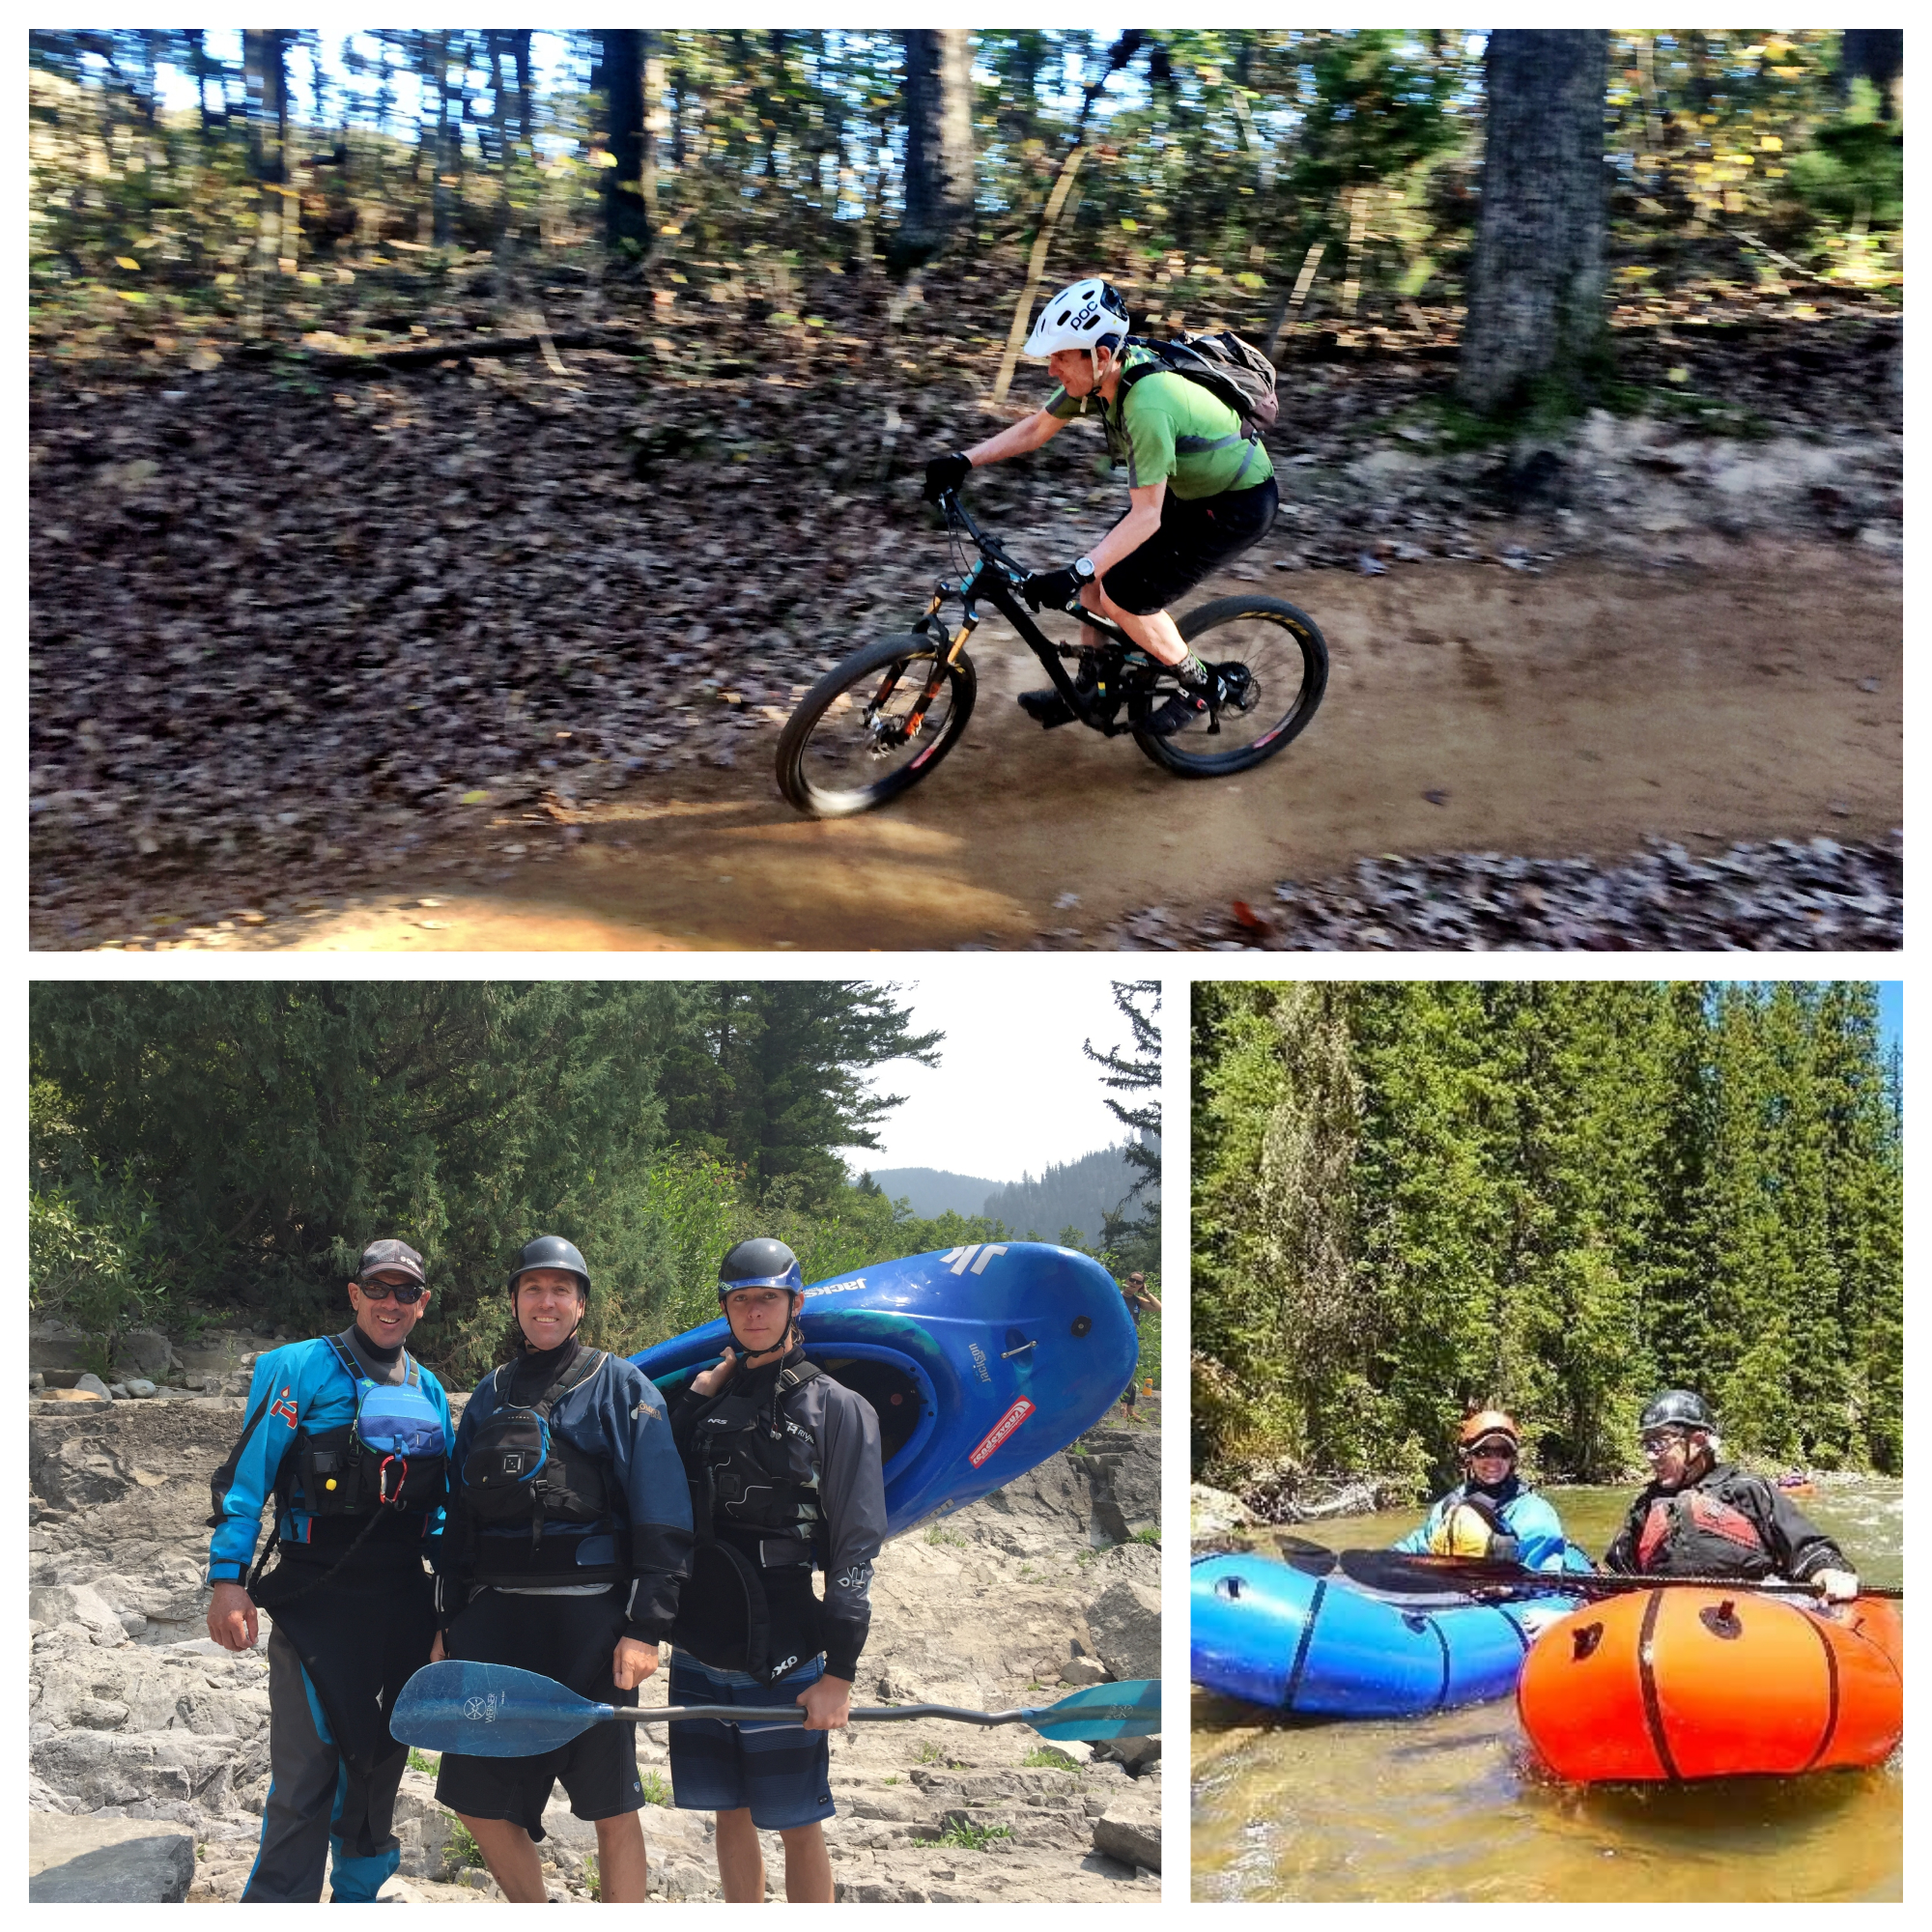 L-R Riding bikes in Bentonville, AR, padding Snake River Canyon with Randy and Will Luskey, Paddling the Spread Creek, WY.  Luther enjoys exploring the wild country of Teton County, Greater Yellowstone, and beyond – on foot, ski, bicycle, with a fly rod, or in a kayak or pack raft – with Liz Storer.